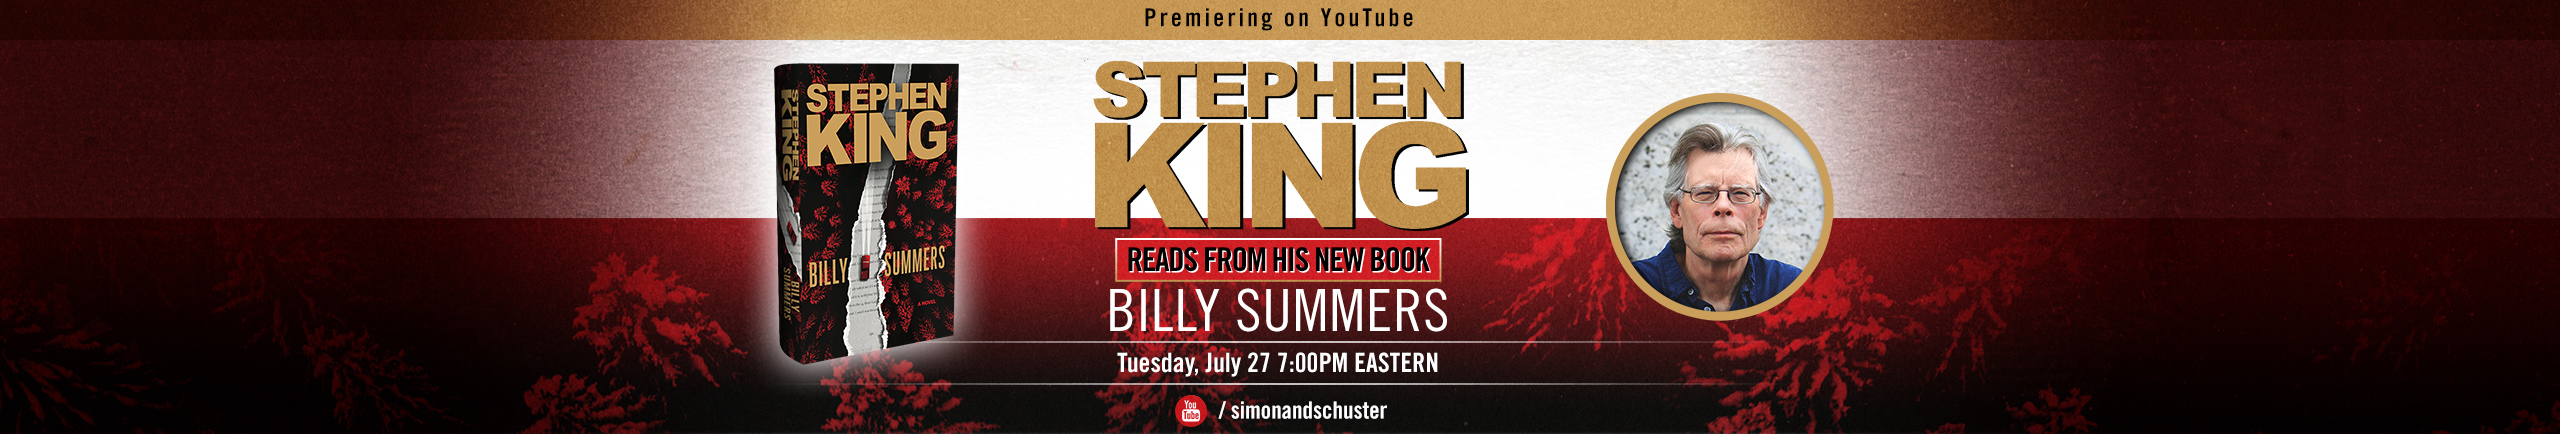 Stephen King Reads from His New Novel Billy Summers